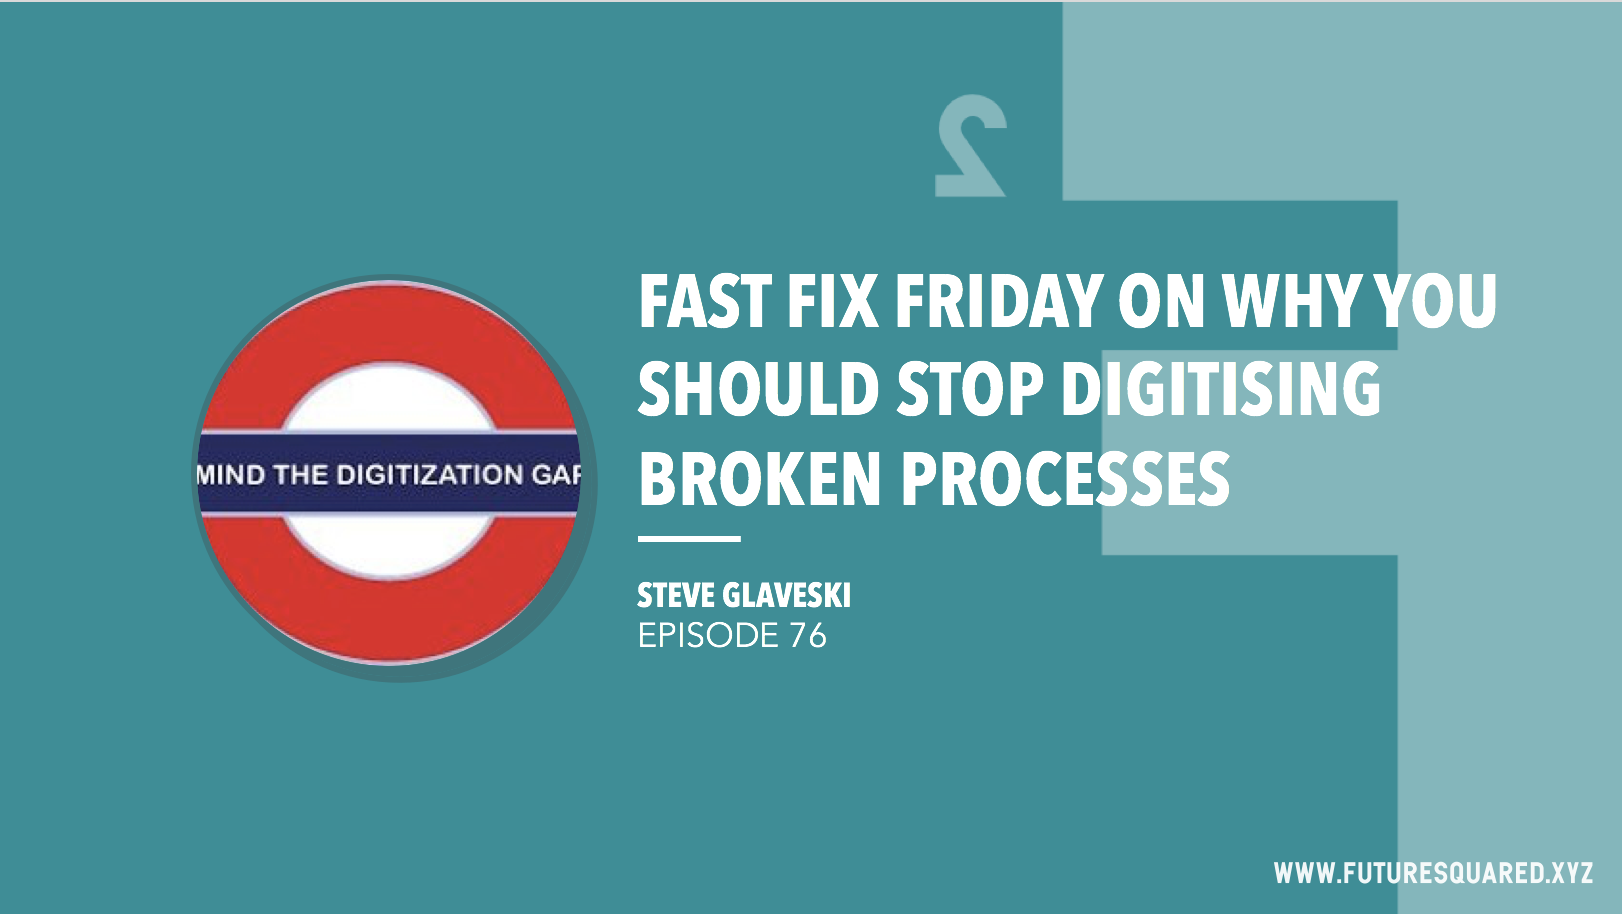 Future Squared Episode #76: Fast Fix Friday on Why You Should Stop Digitising Broken Processes